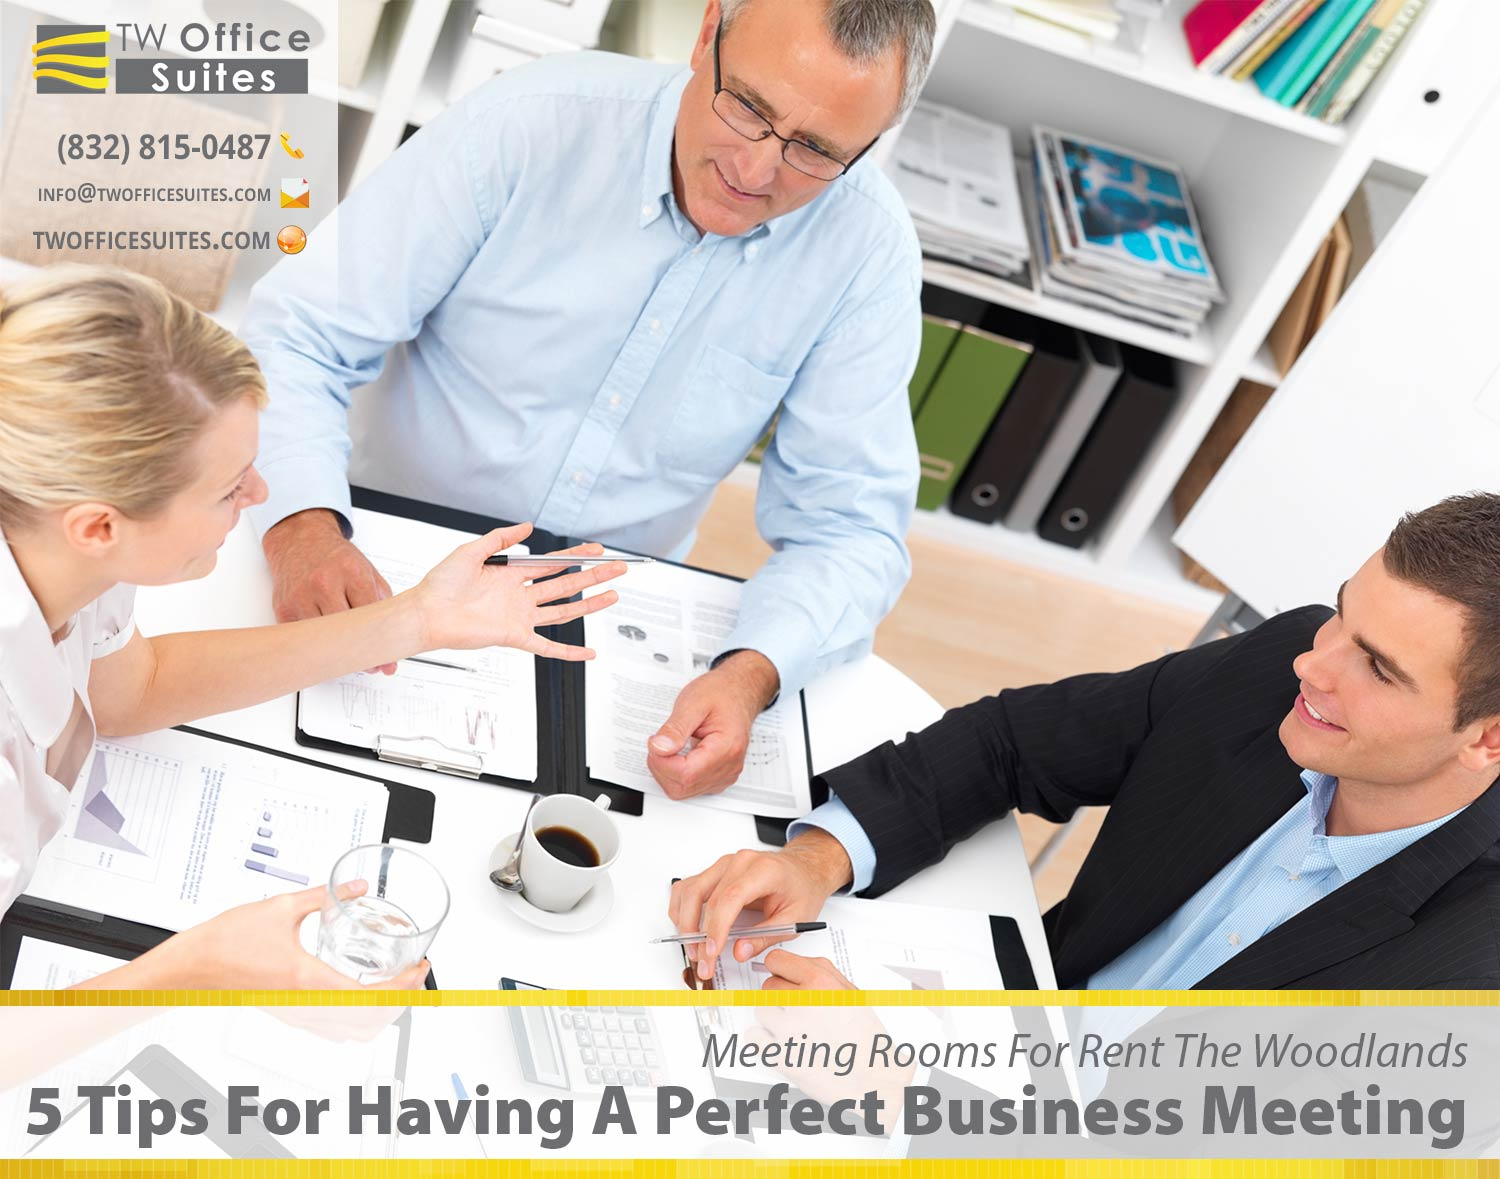 5 tips for having a perfect business meeting